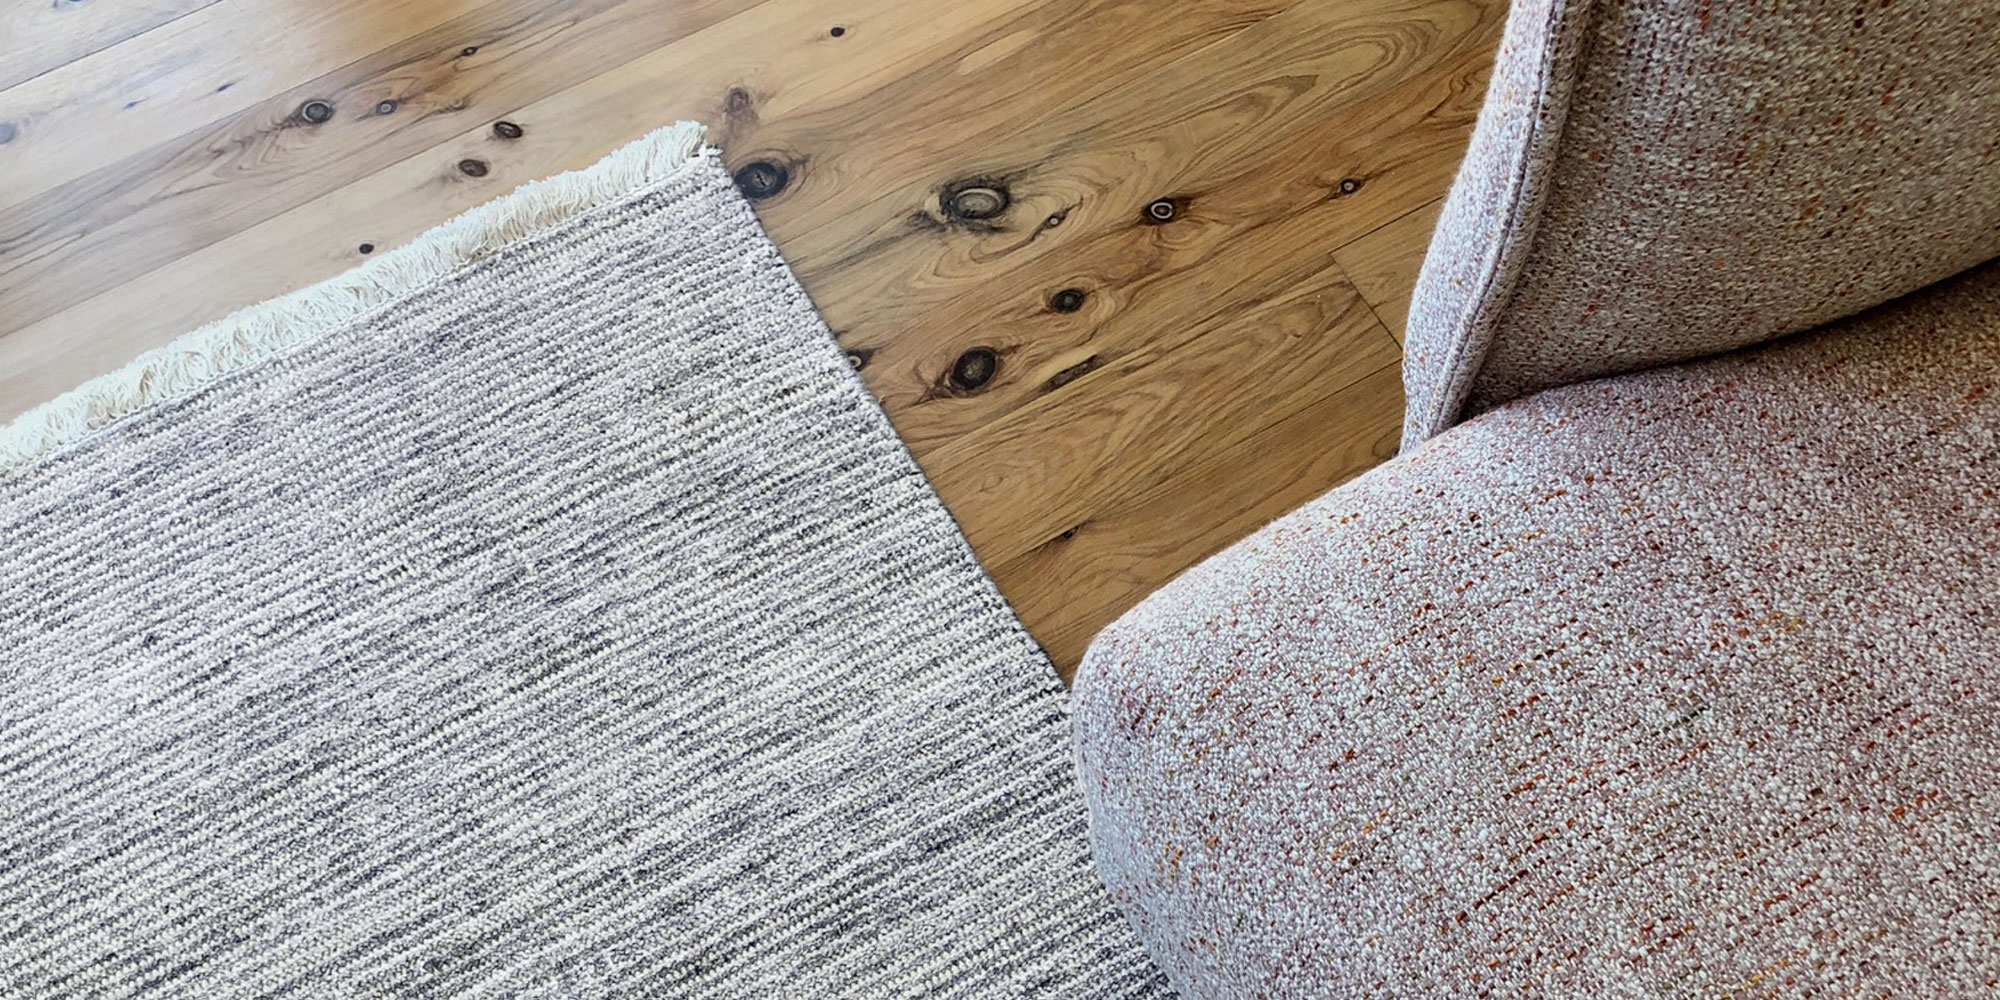 Tips for Placing Rugs on Hardwood Floors